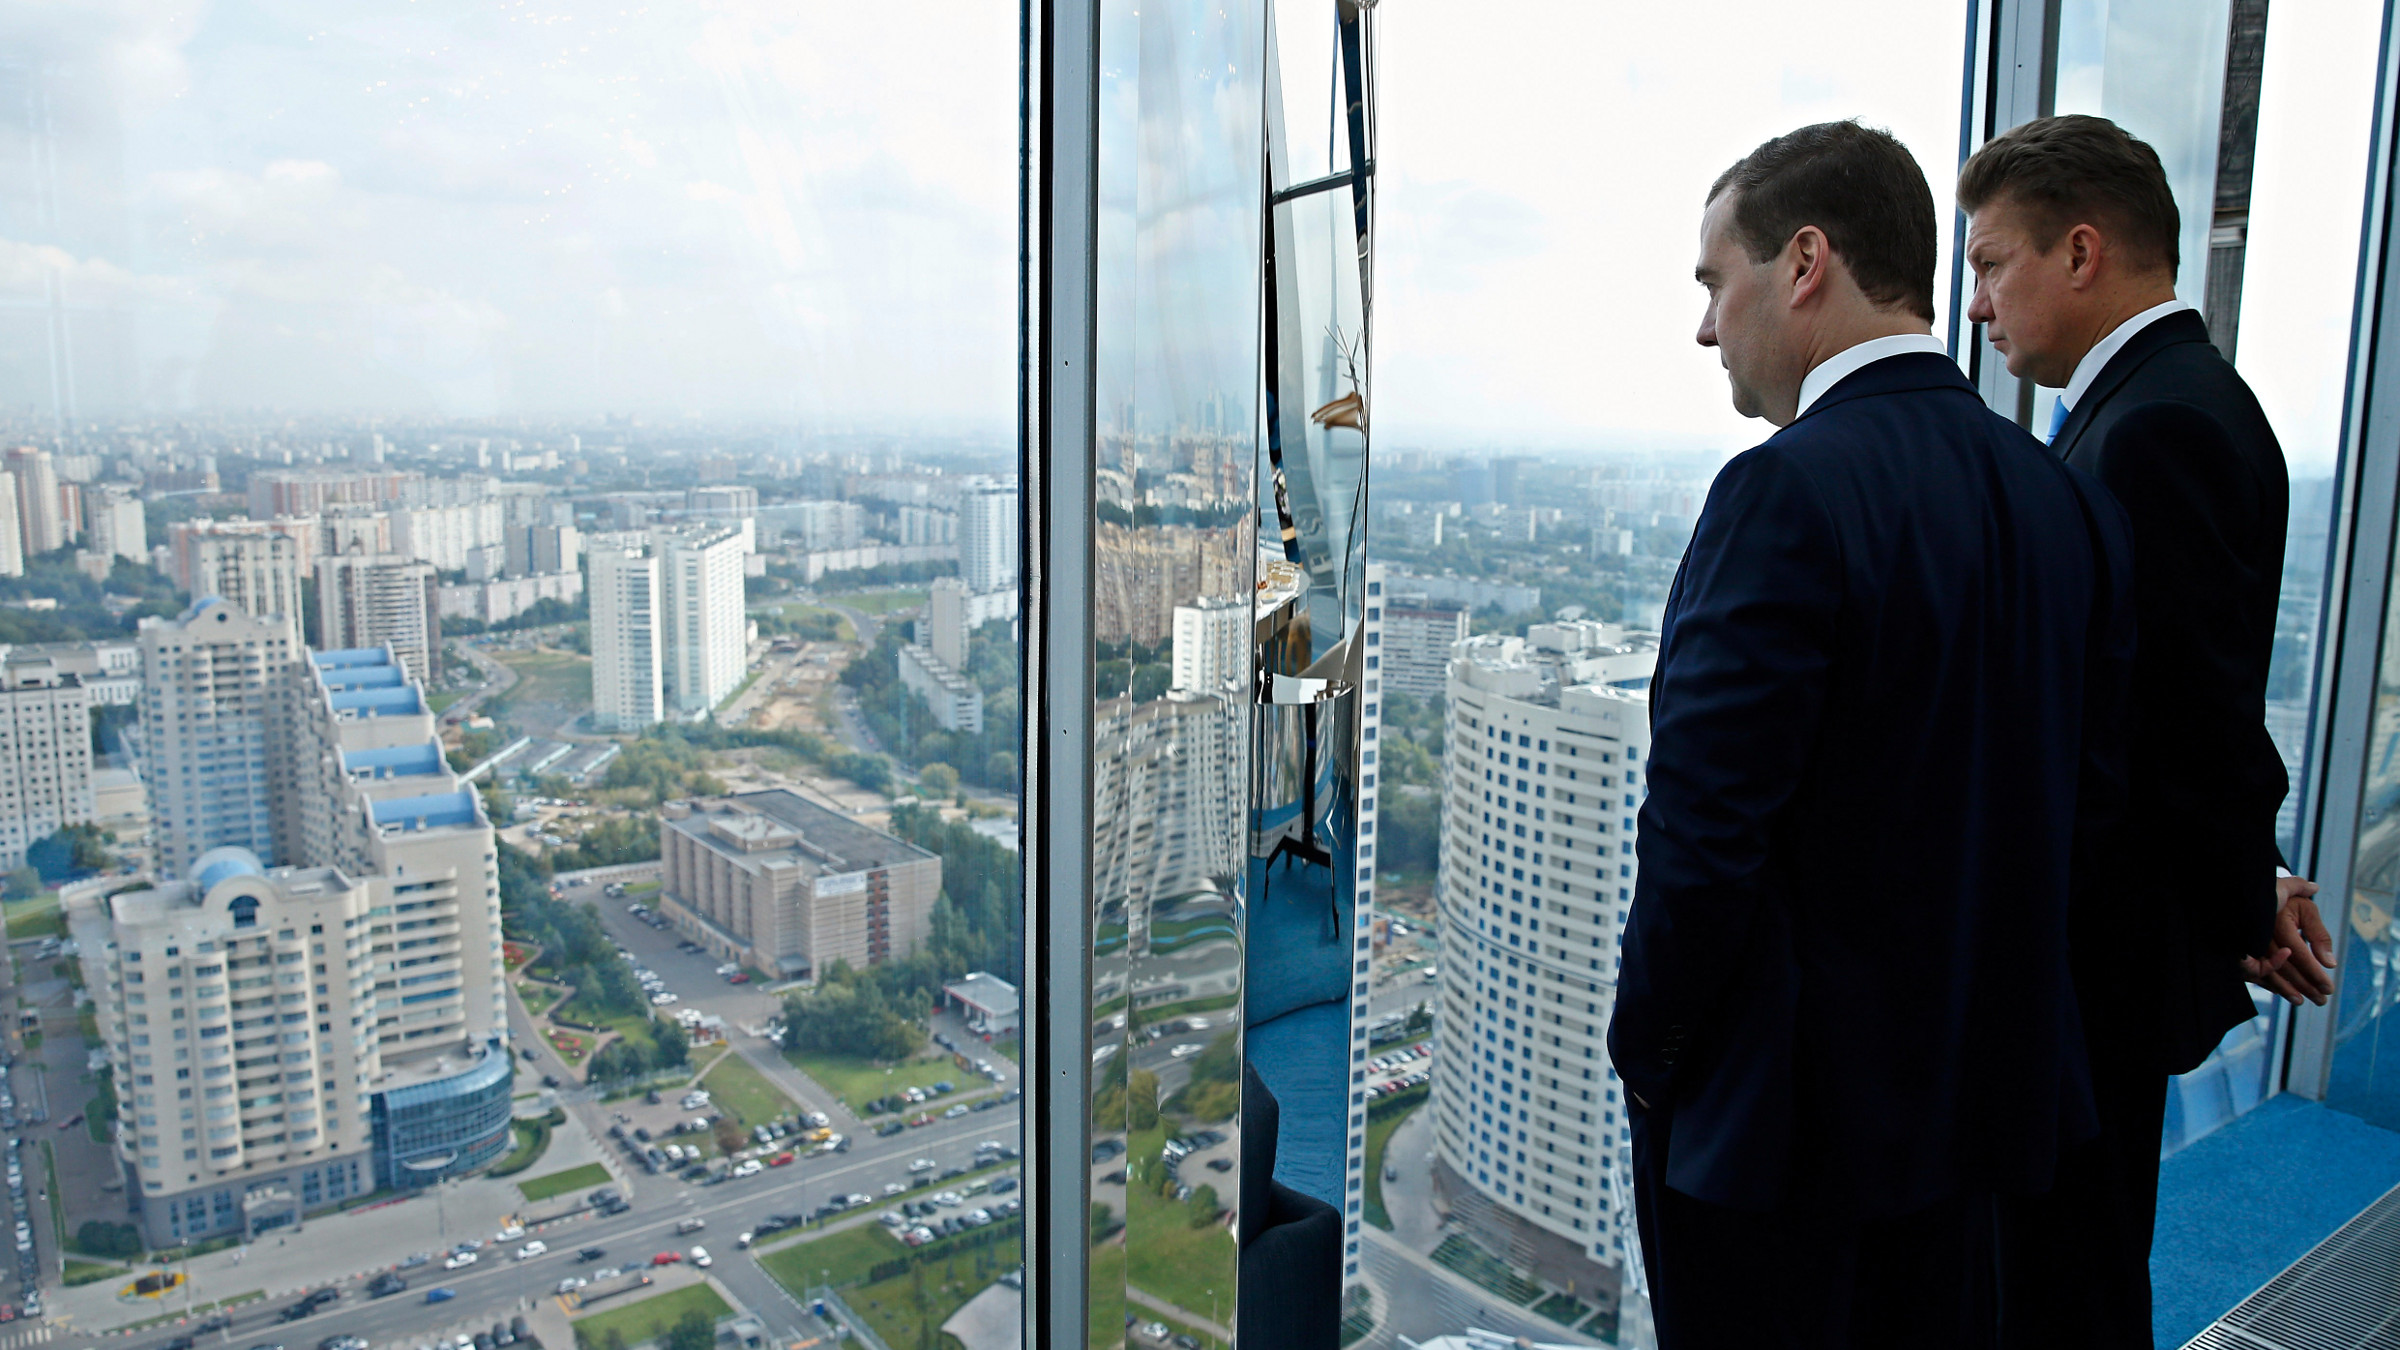 Russian Prime Minister Dmitry Medvedev, left, and Russian gas monopoly Gazprom Head Alexei Miller meet in the Gazprom headquarters in Moscow, Friday, Aug. 30, 2013.